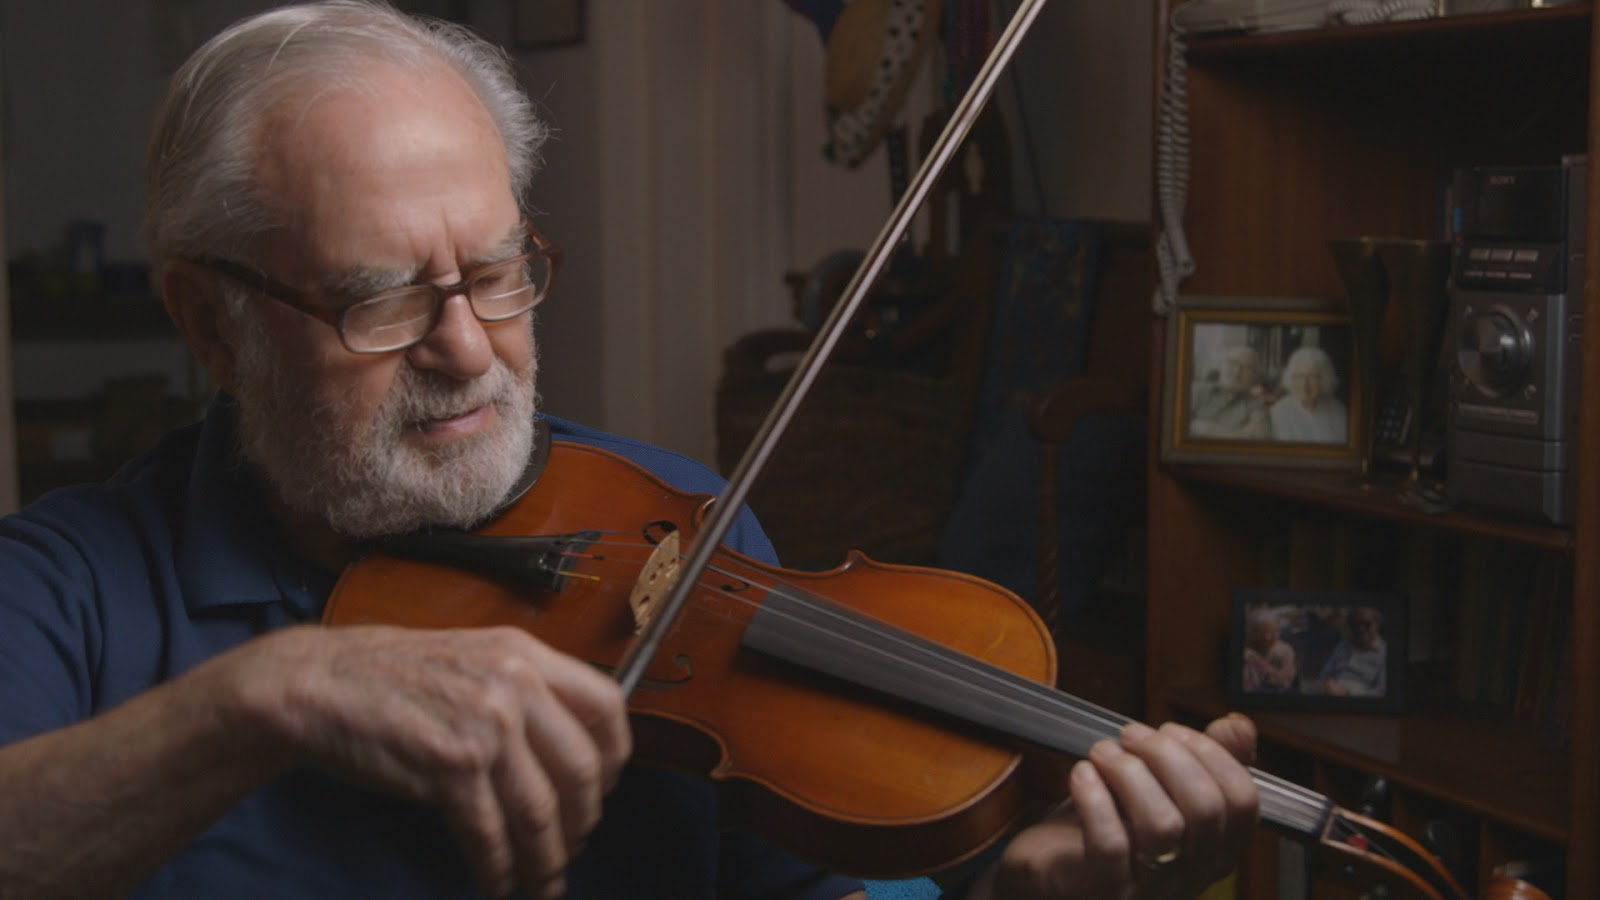 Um jeito manso o violino de joe the retired architect was born in warsaw in 1923 and grew up playing the violin encouraged by his mother i delighted in learning about fandeluxe Gallery